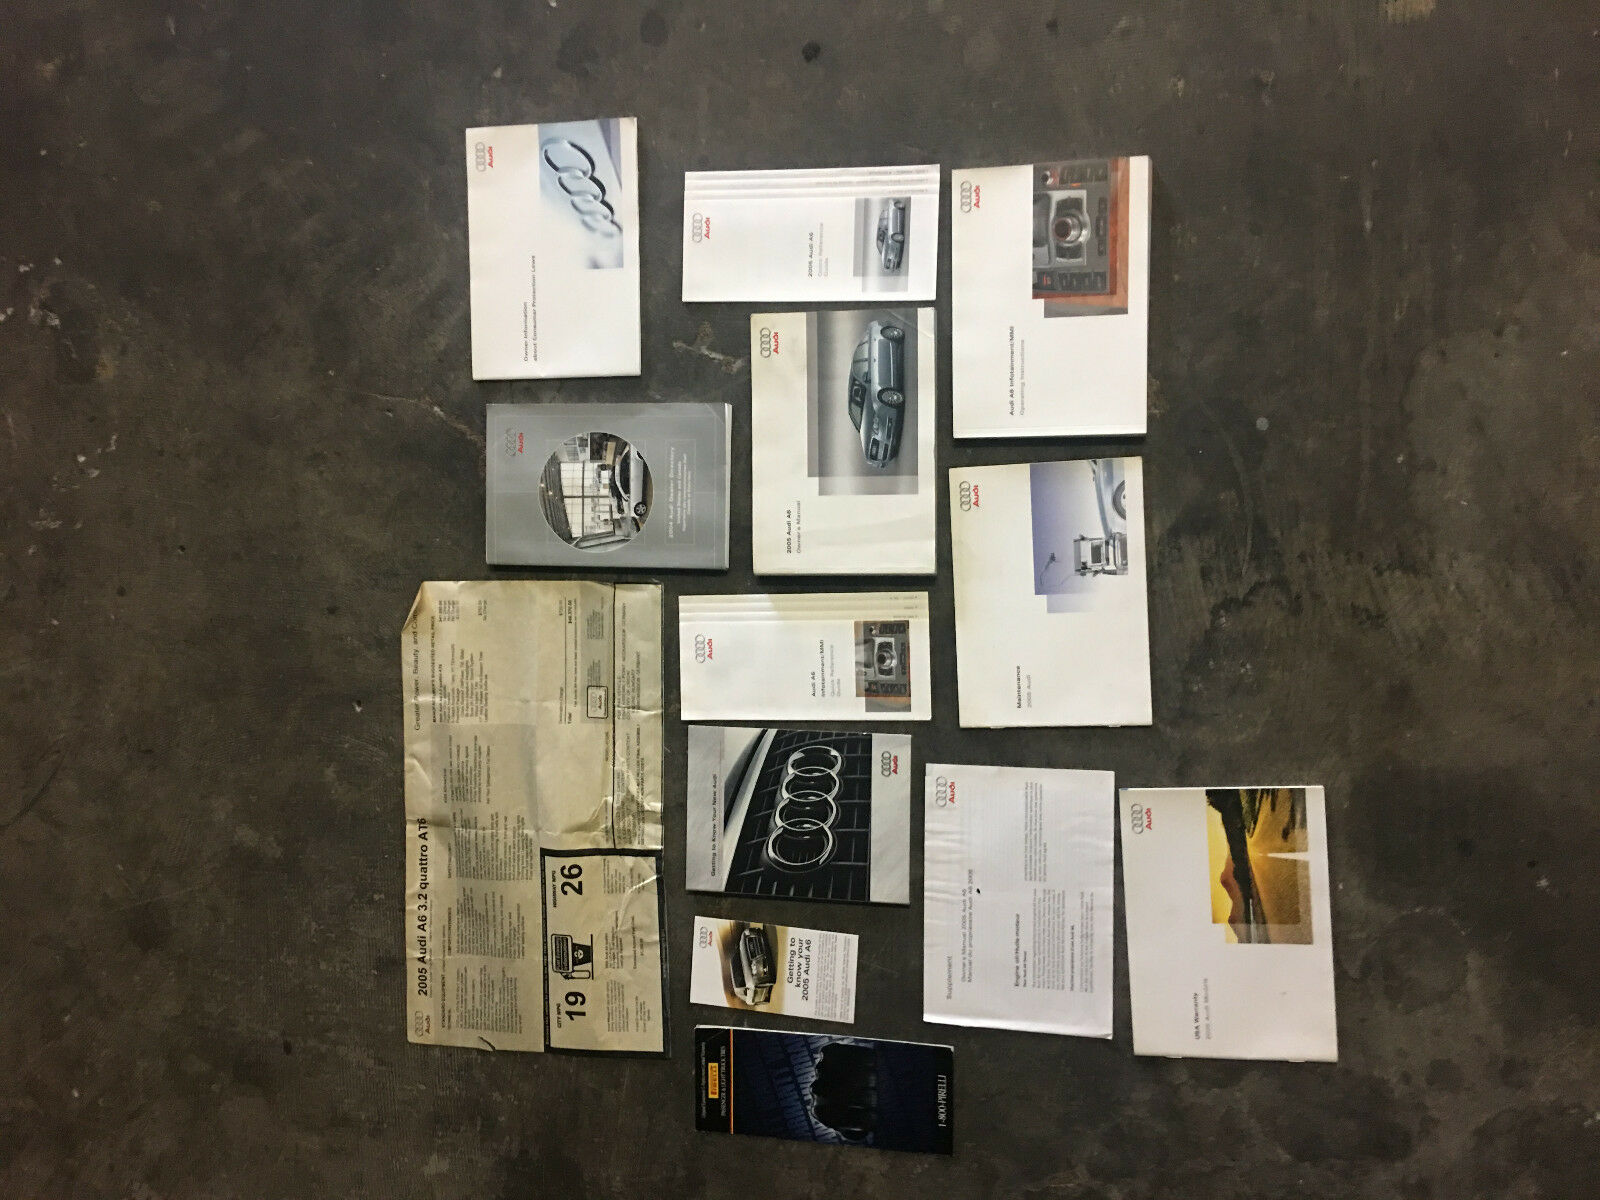 audi a6 c6 owners manual complete 2005 2009 compatibility 2005 with rh picclick com Audi A5 Manual 2005 audi a6 4.2 owners manual